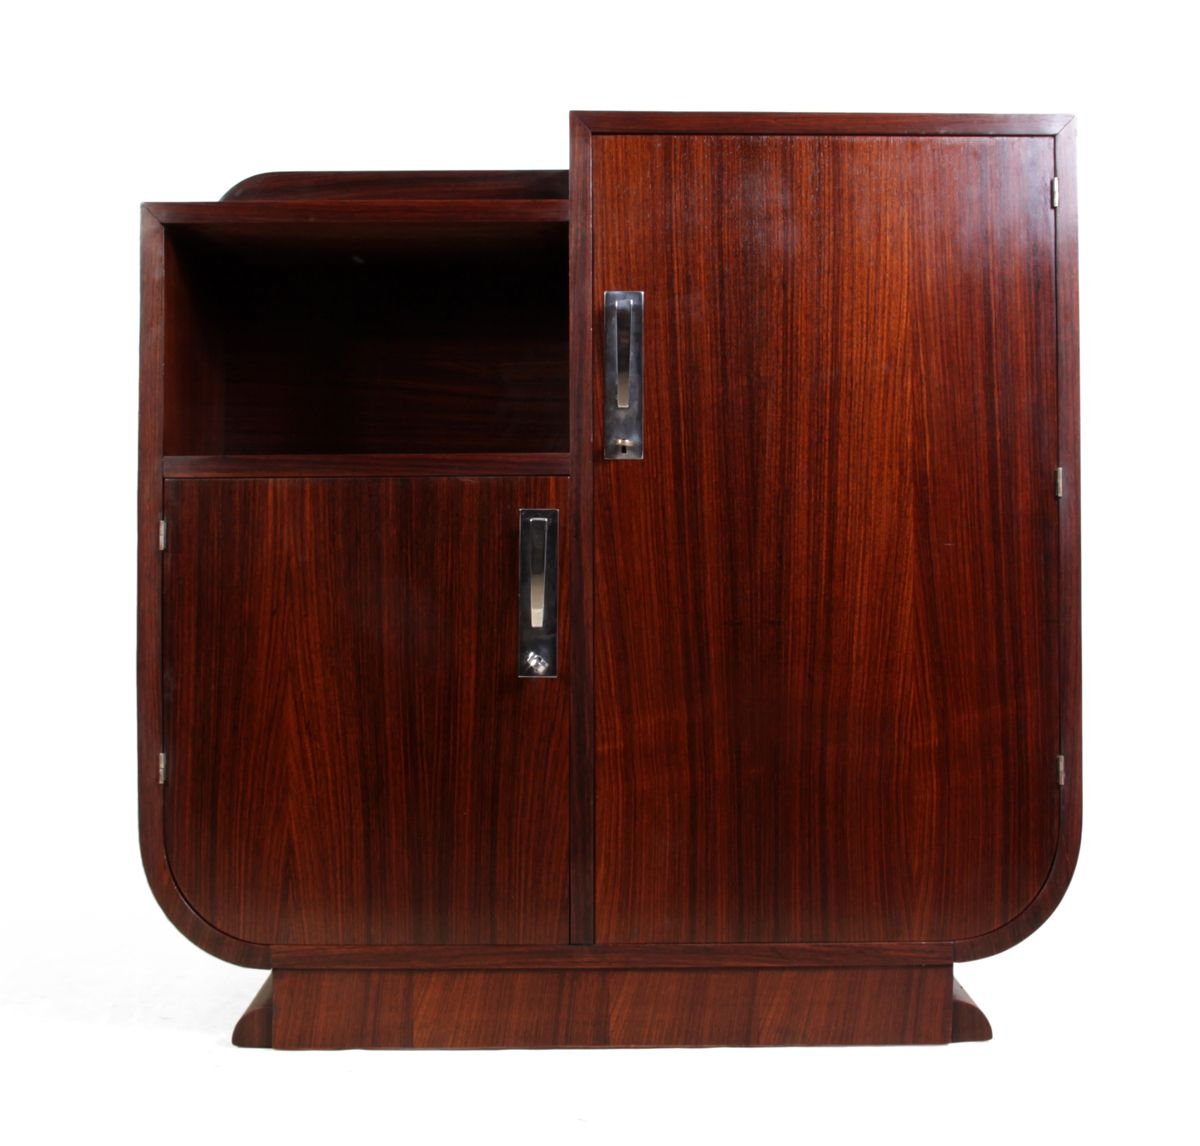 Art deco rosewood side cabinet 1930s for sale at pamono for Meuble art deco 1930